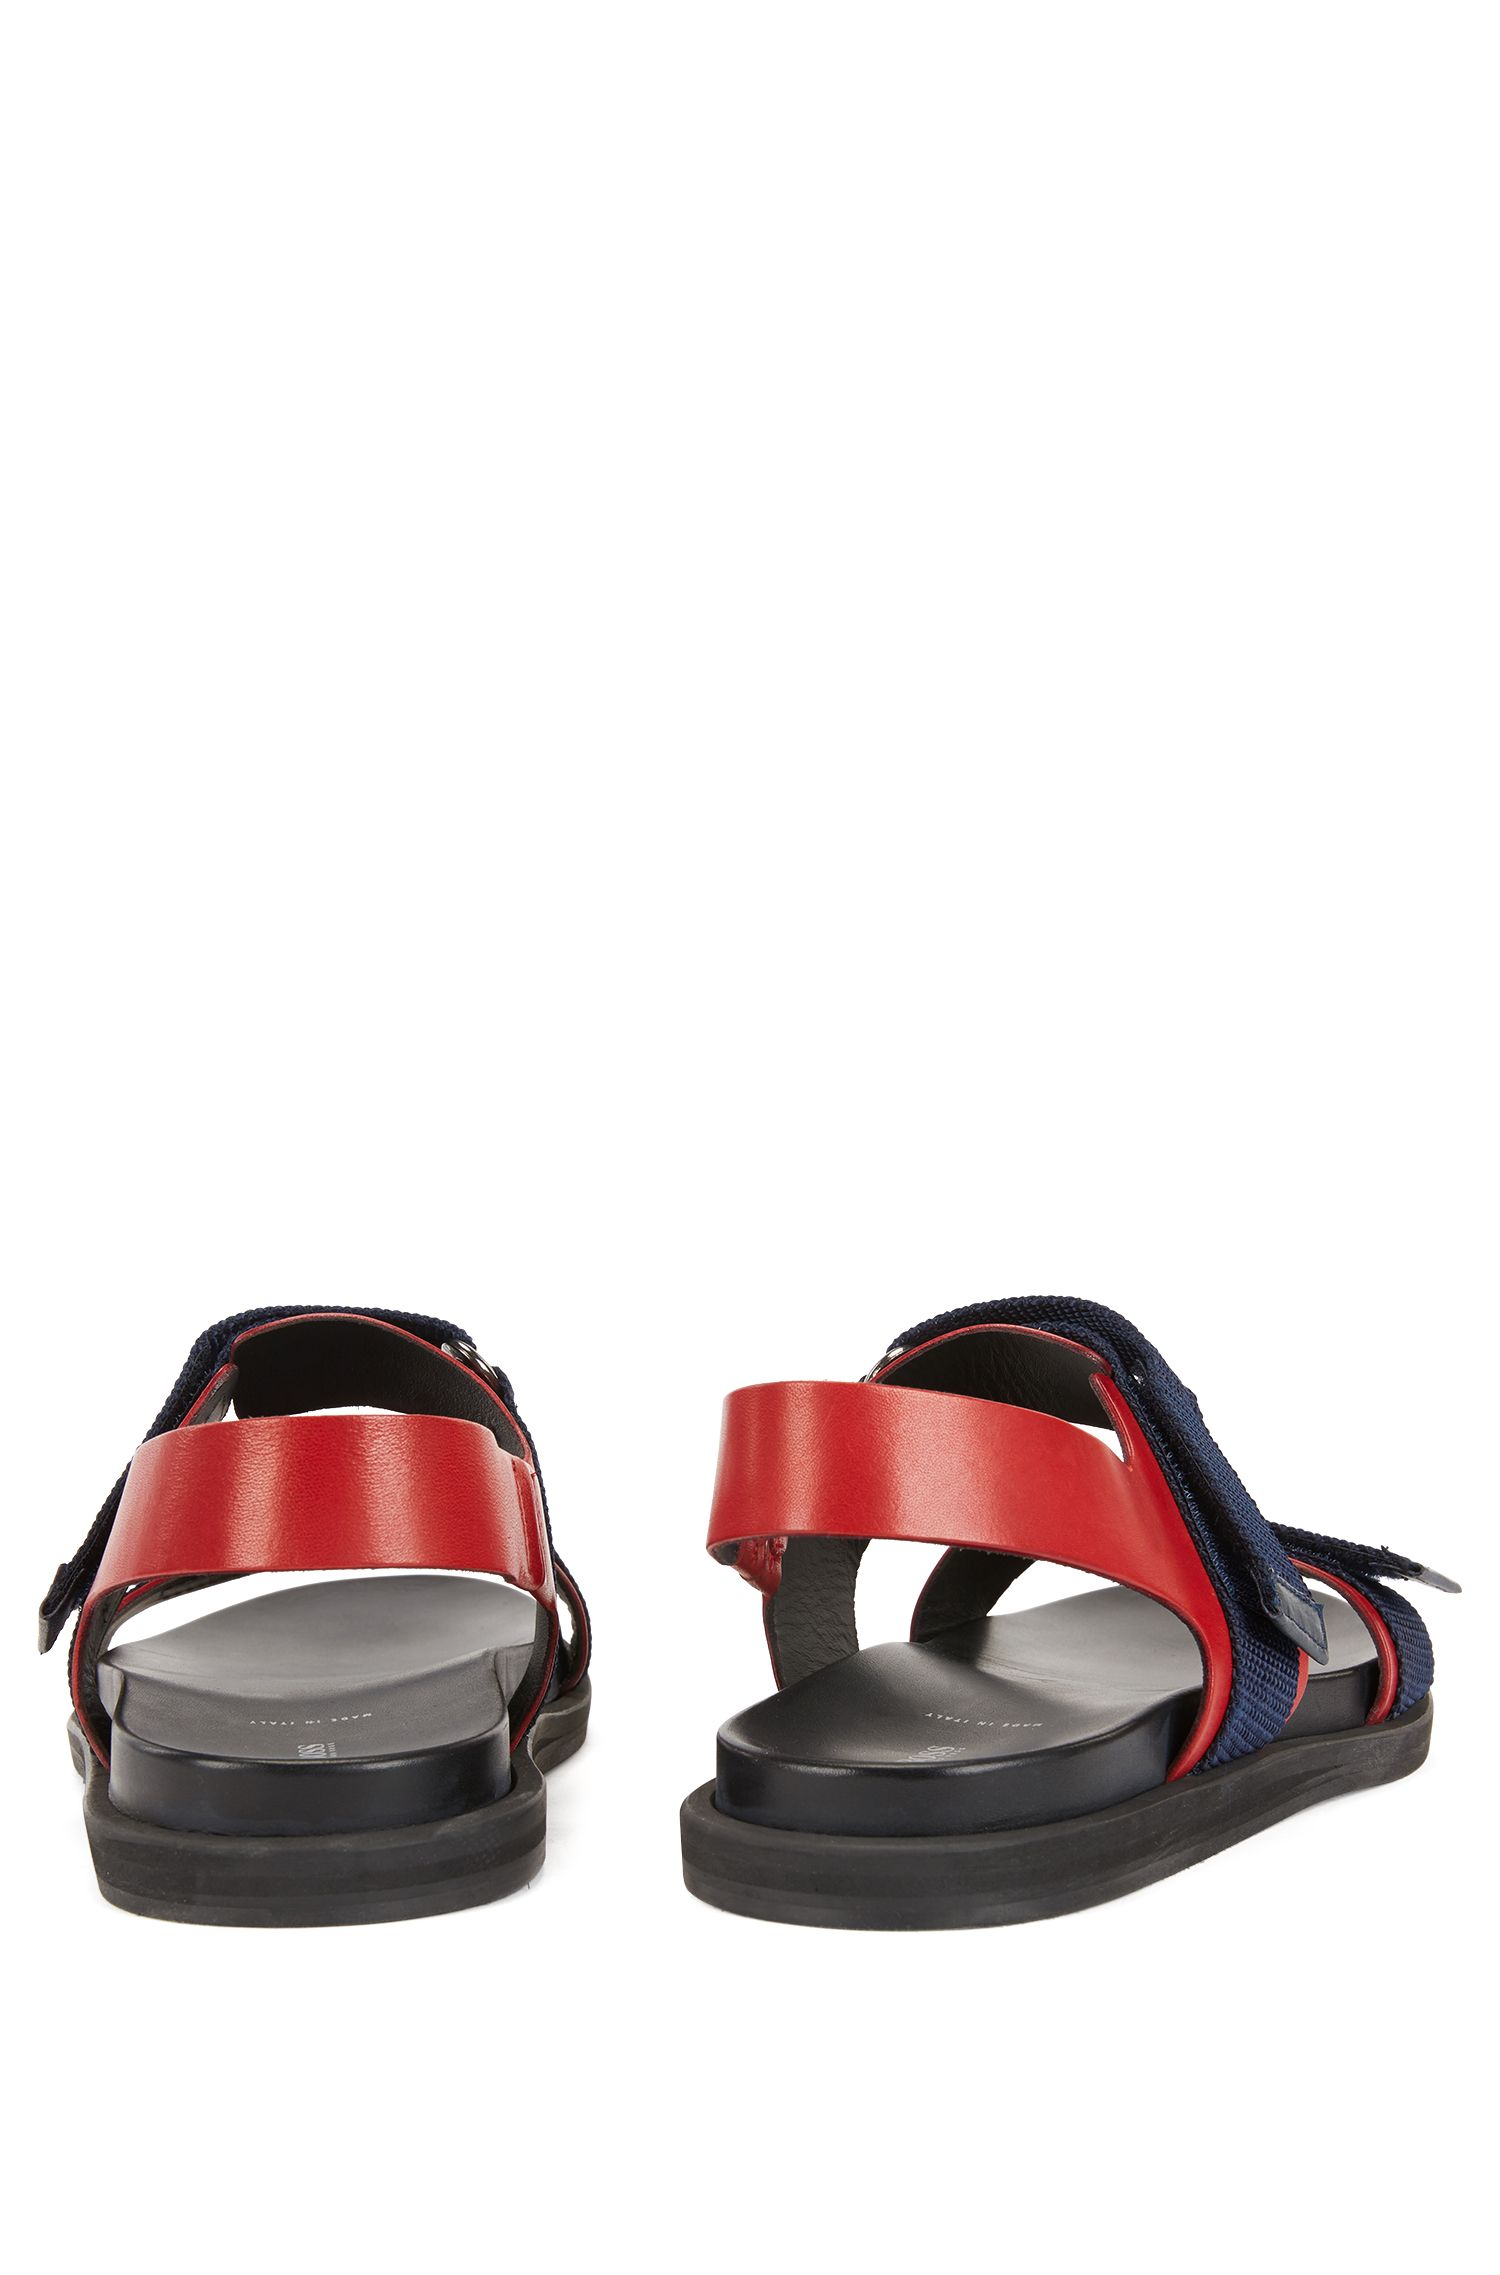 Leather Sandal | Hamptons Sand Vlmx